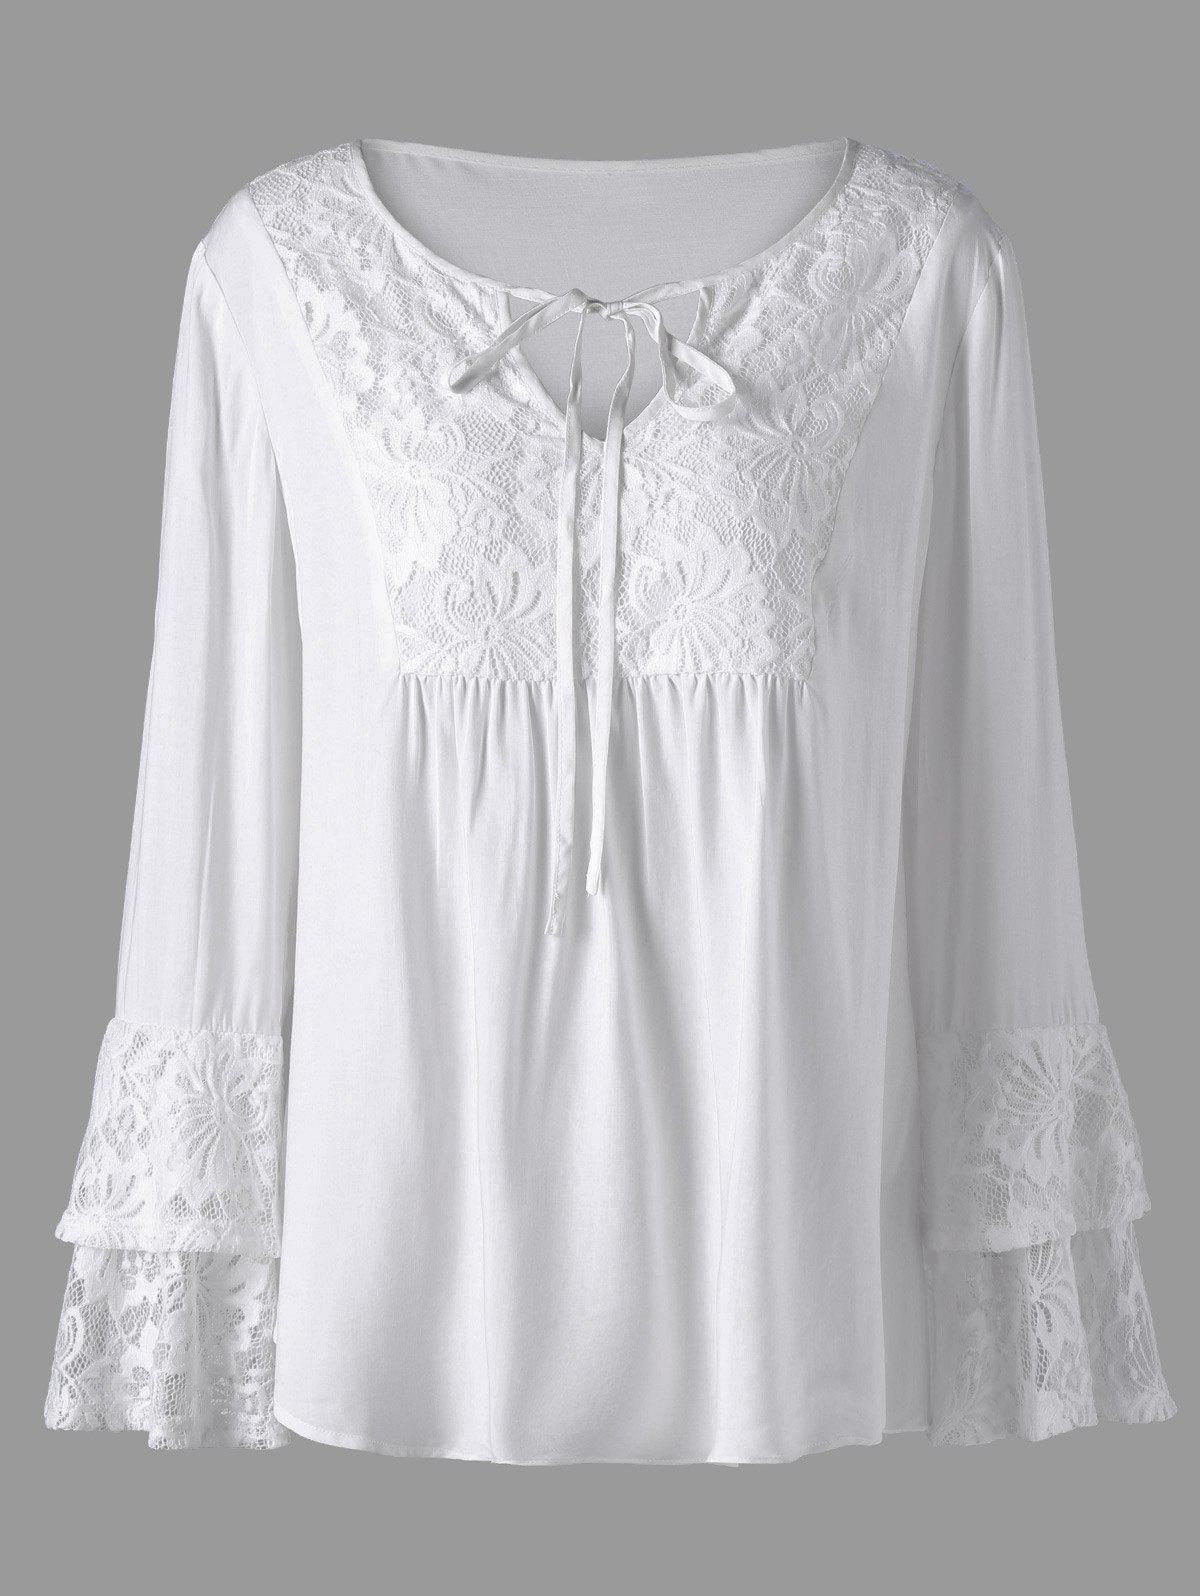 Plus Size Layered Sleeve Lace Trim BlouseWOMEN<br><br>Size: 2XL; Color: WHITE; Material: Rayon,Spandex; Shirt Length: Long; Sleeve Length: Full; Collar: Keyhole Neck; Style: Casual; Season: Fall,Spring,Summer; Embellishment: Lace; Pattern Type: Floral; Weight: 0.2200kg; Package Contents: 1 x Blouse;